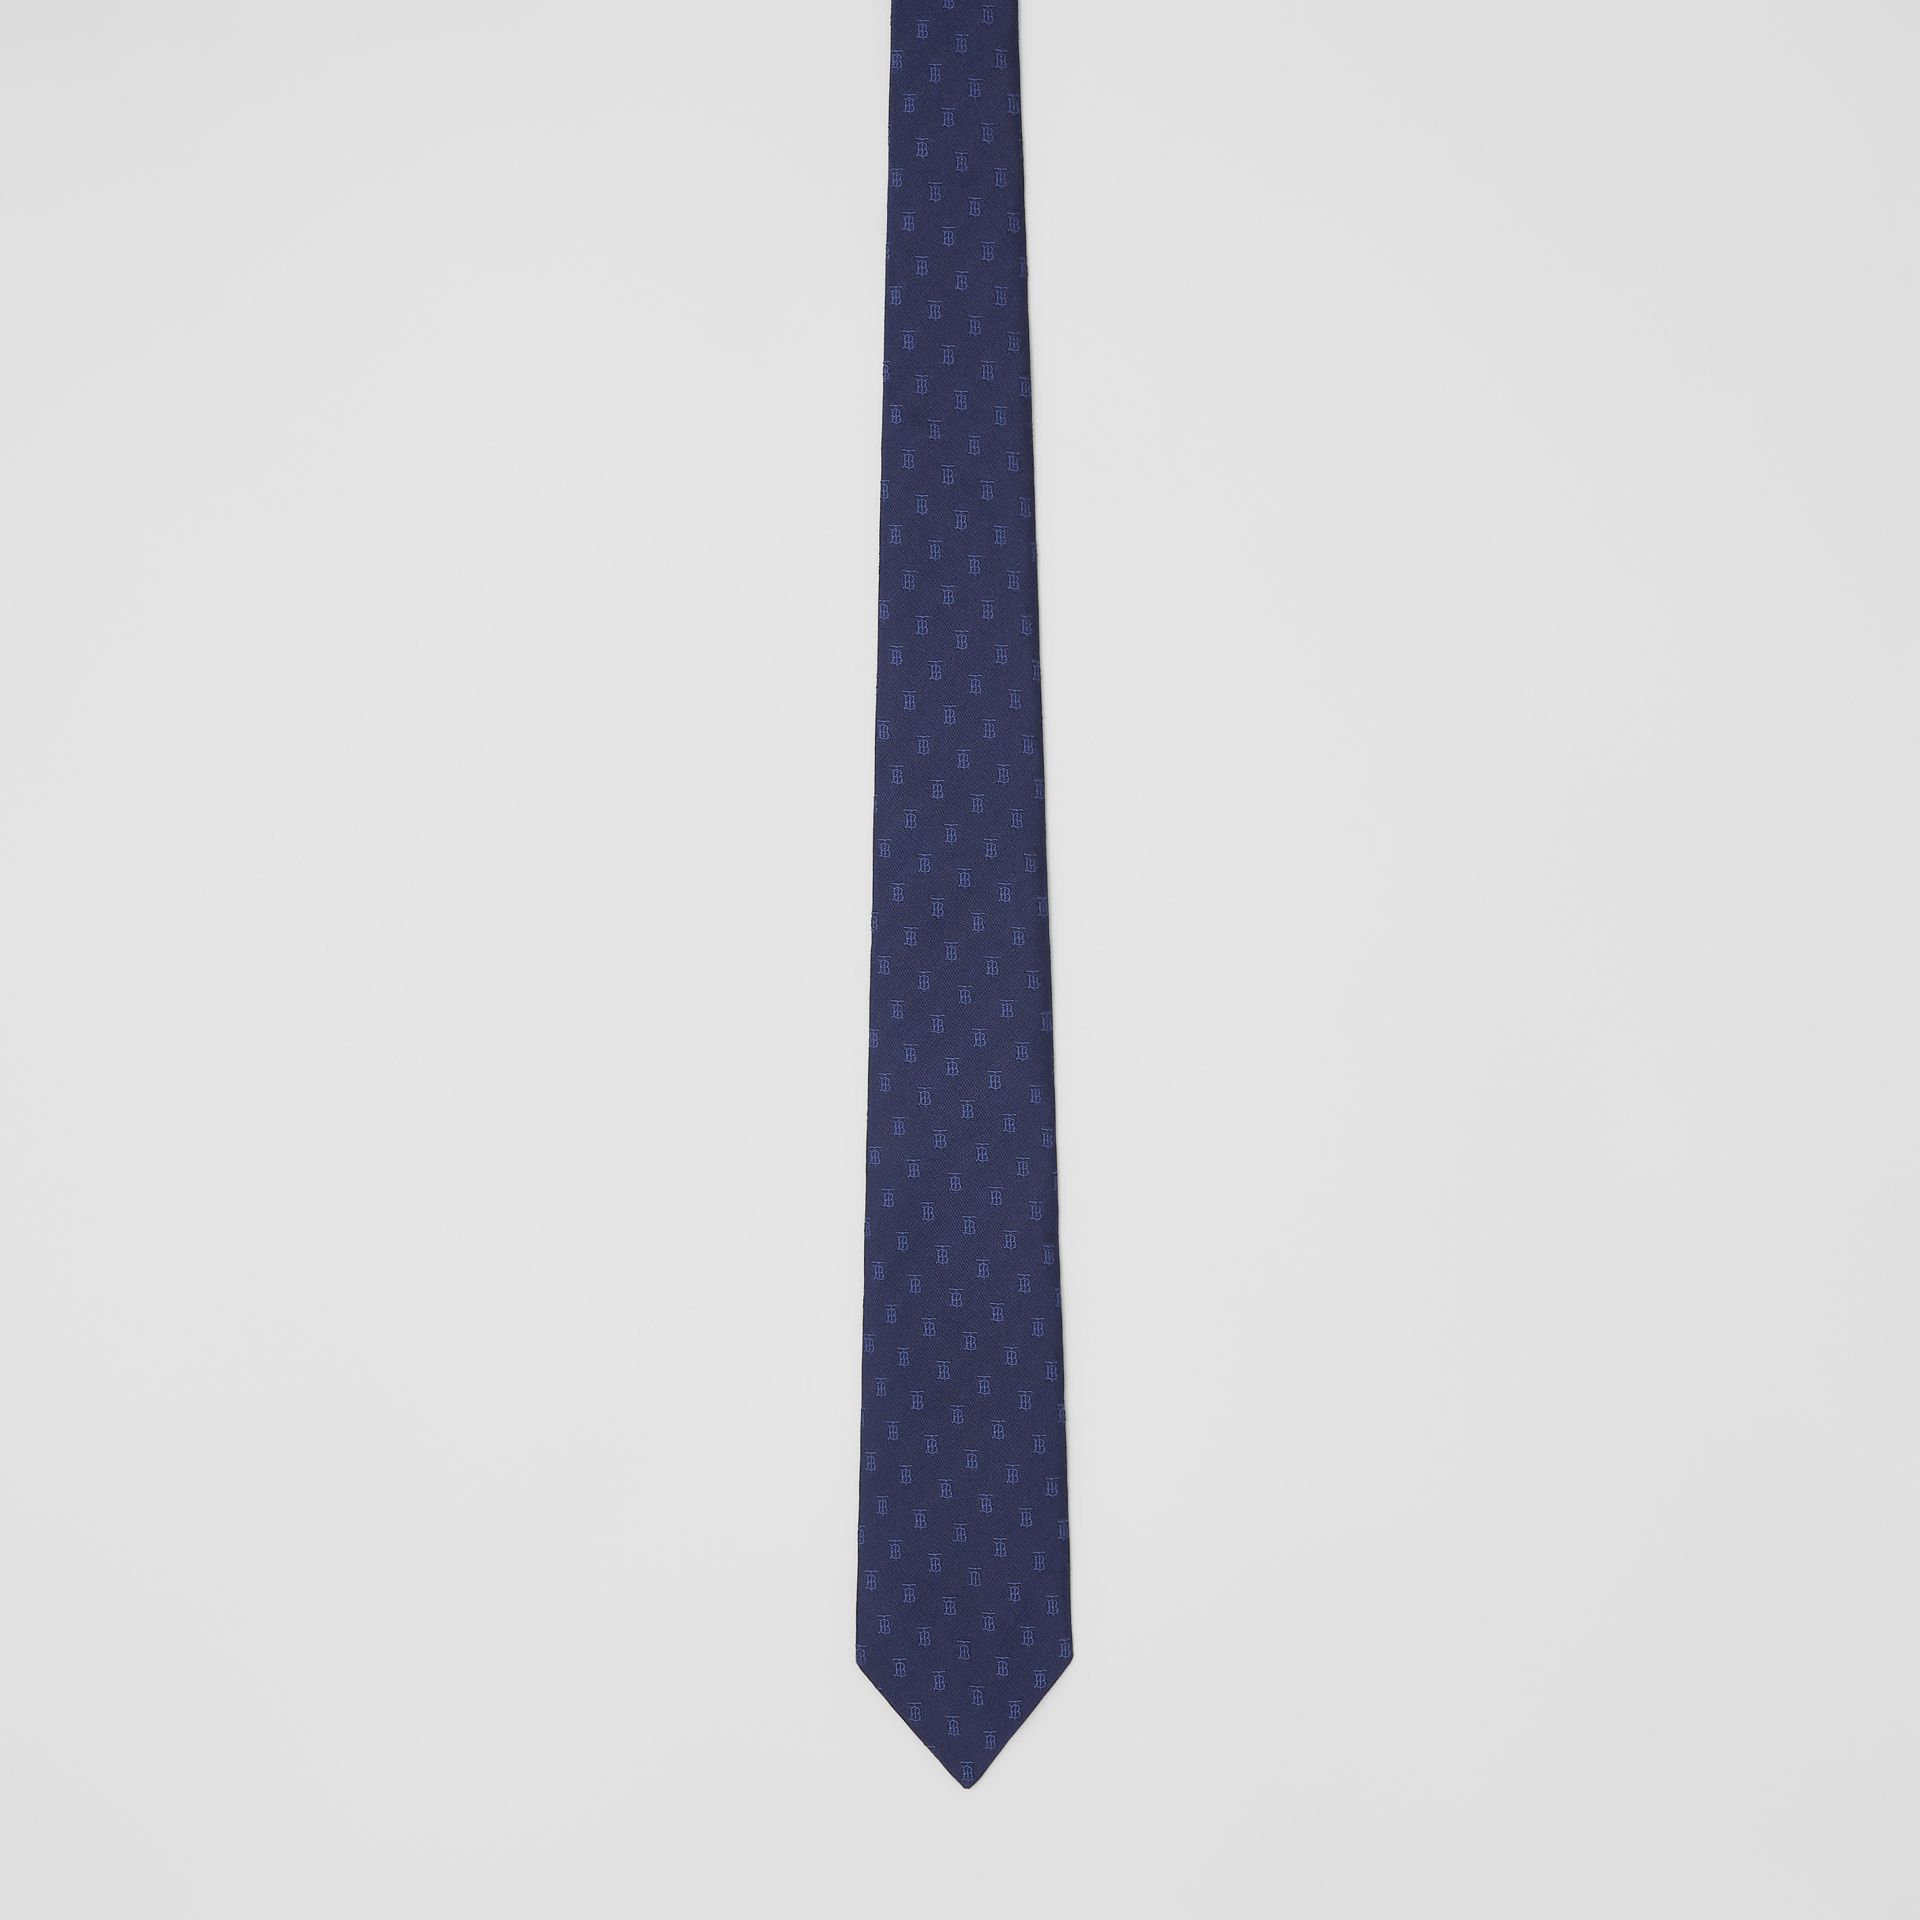 Classic Cut Monogram Motif Silk Jacquard Tie in Navy - Men | Burberry - gallery image 3